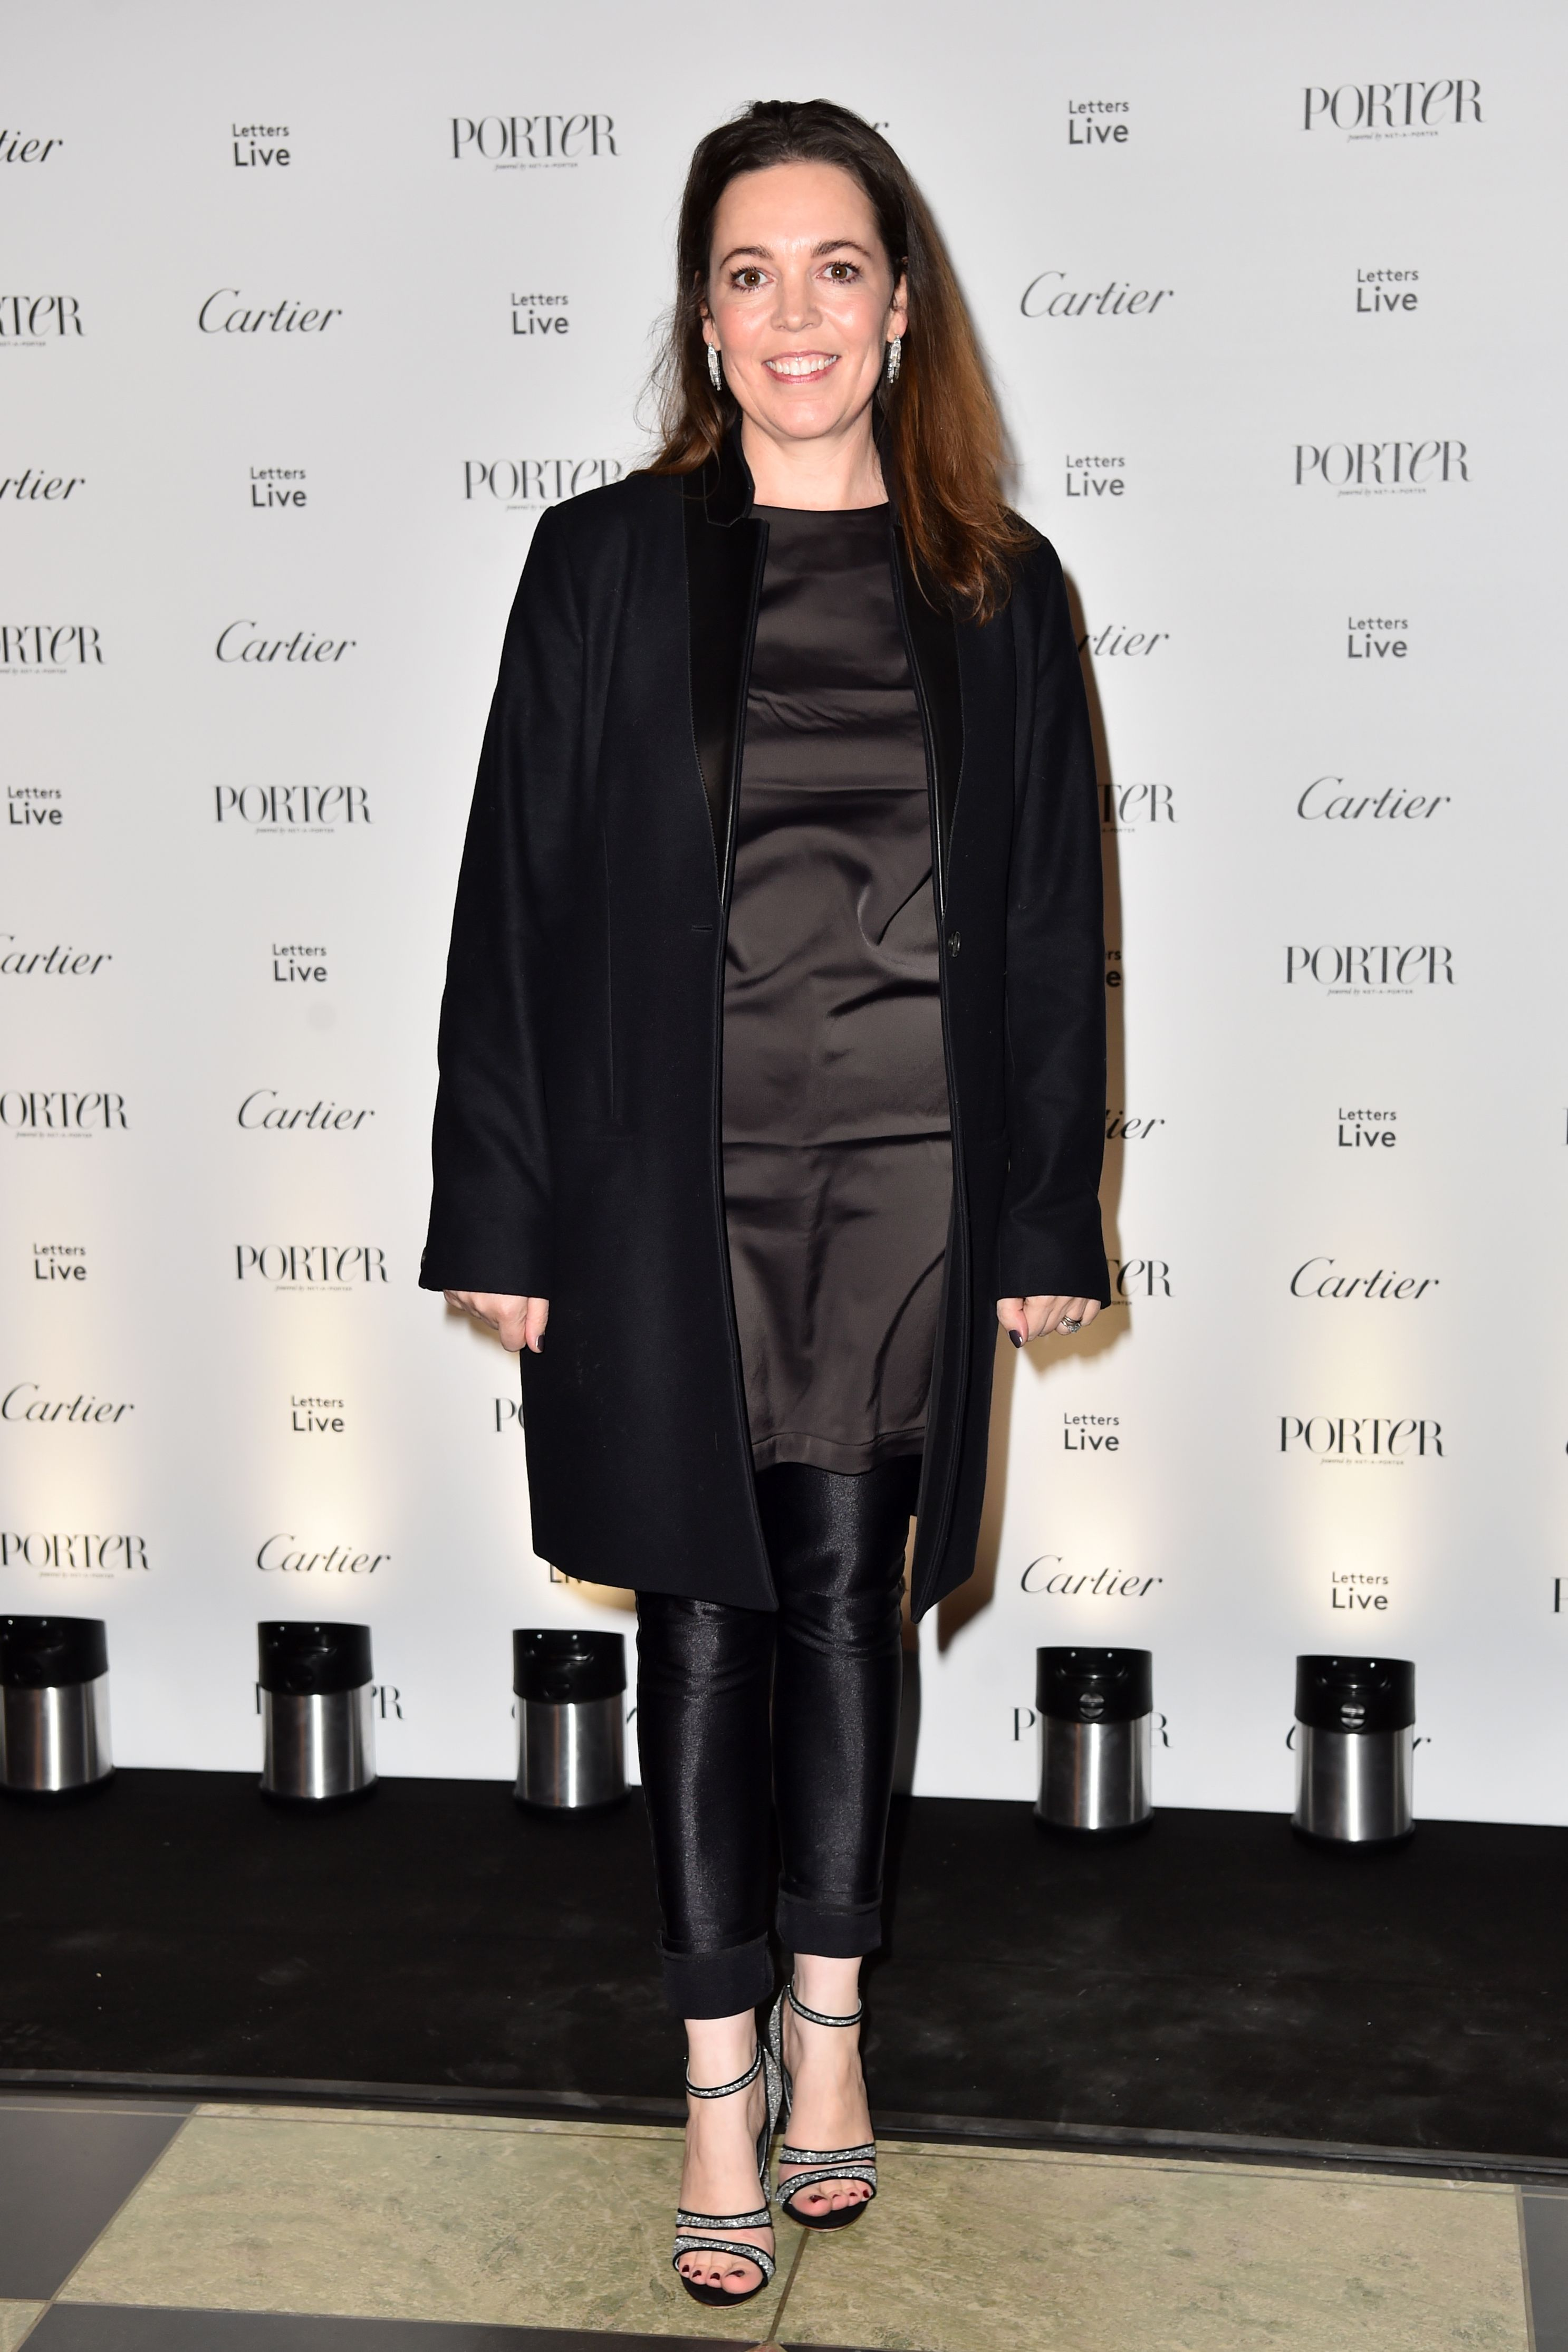 The actress looked chic in an all-black look pairing an oversized coat with a silk dress and leggings for the Letters Live Black Tie Gala Dinner in London